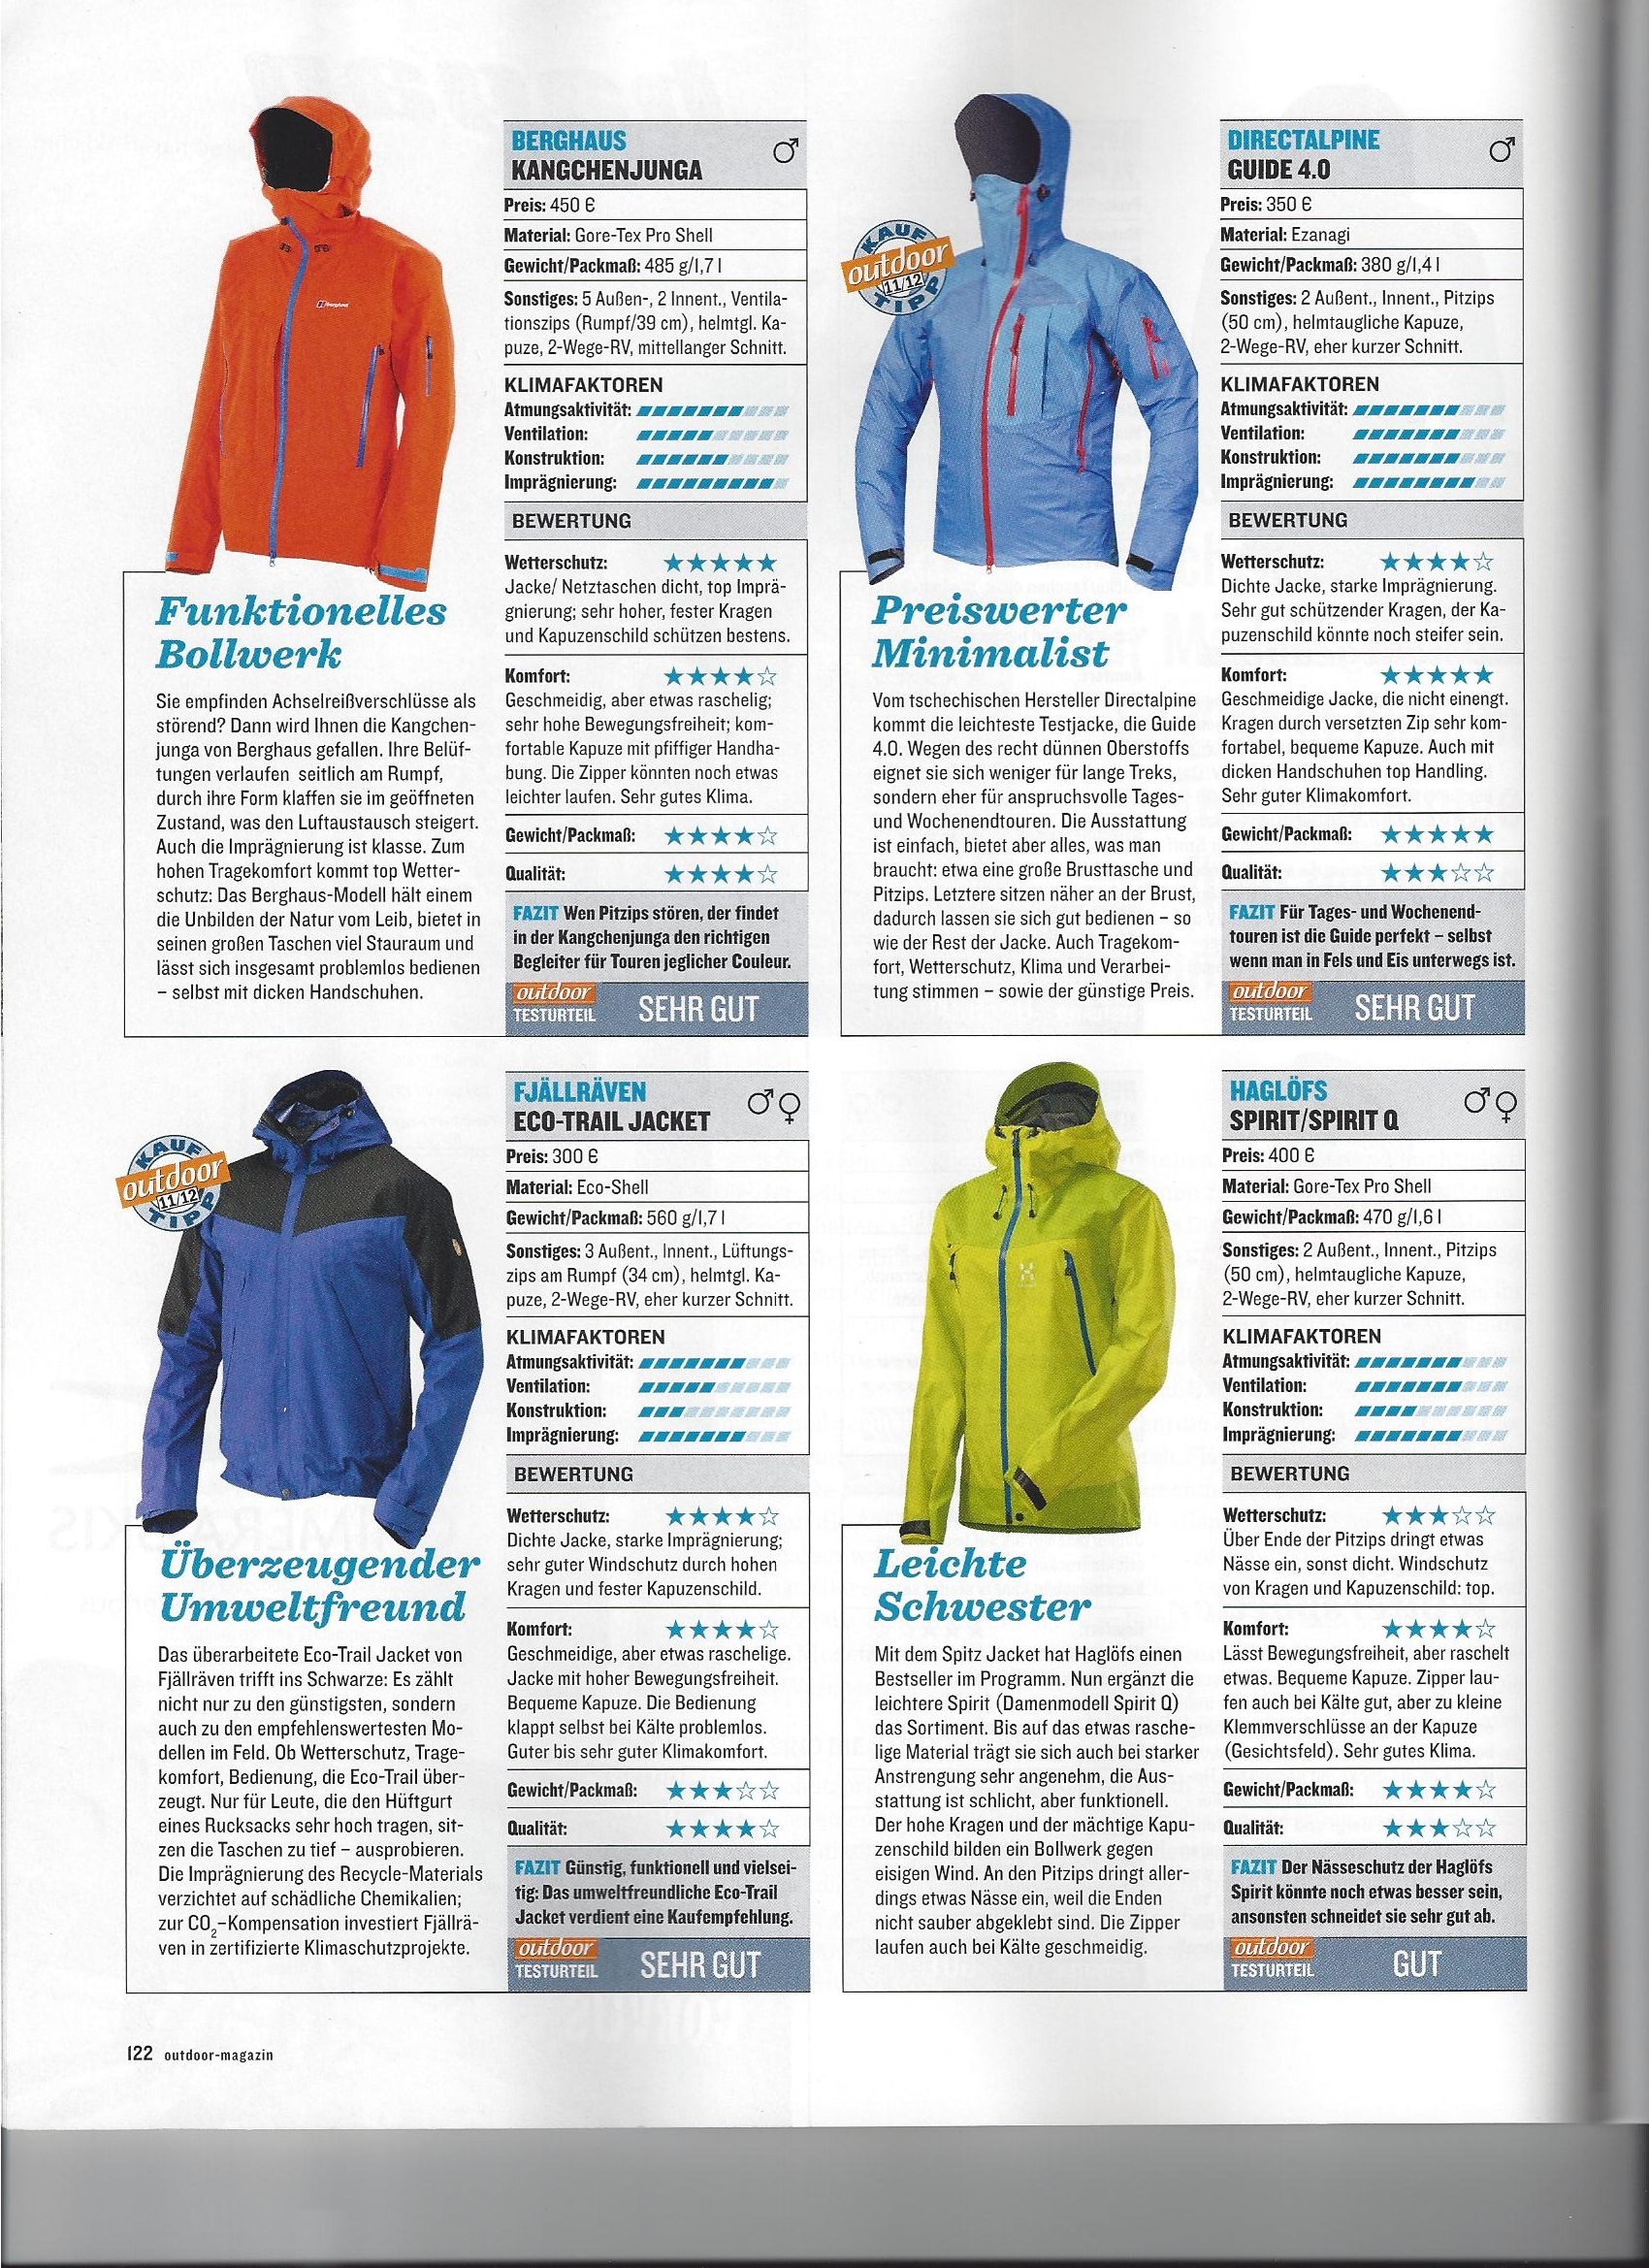 Hardshell GUIDE jacket in OUTDOOR magazine, Made in Europe